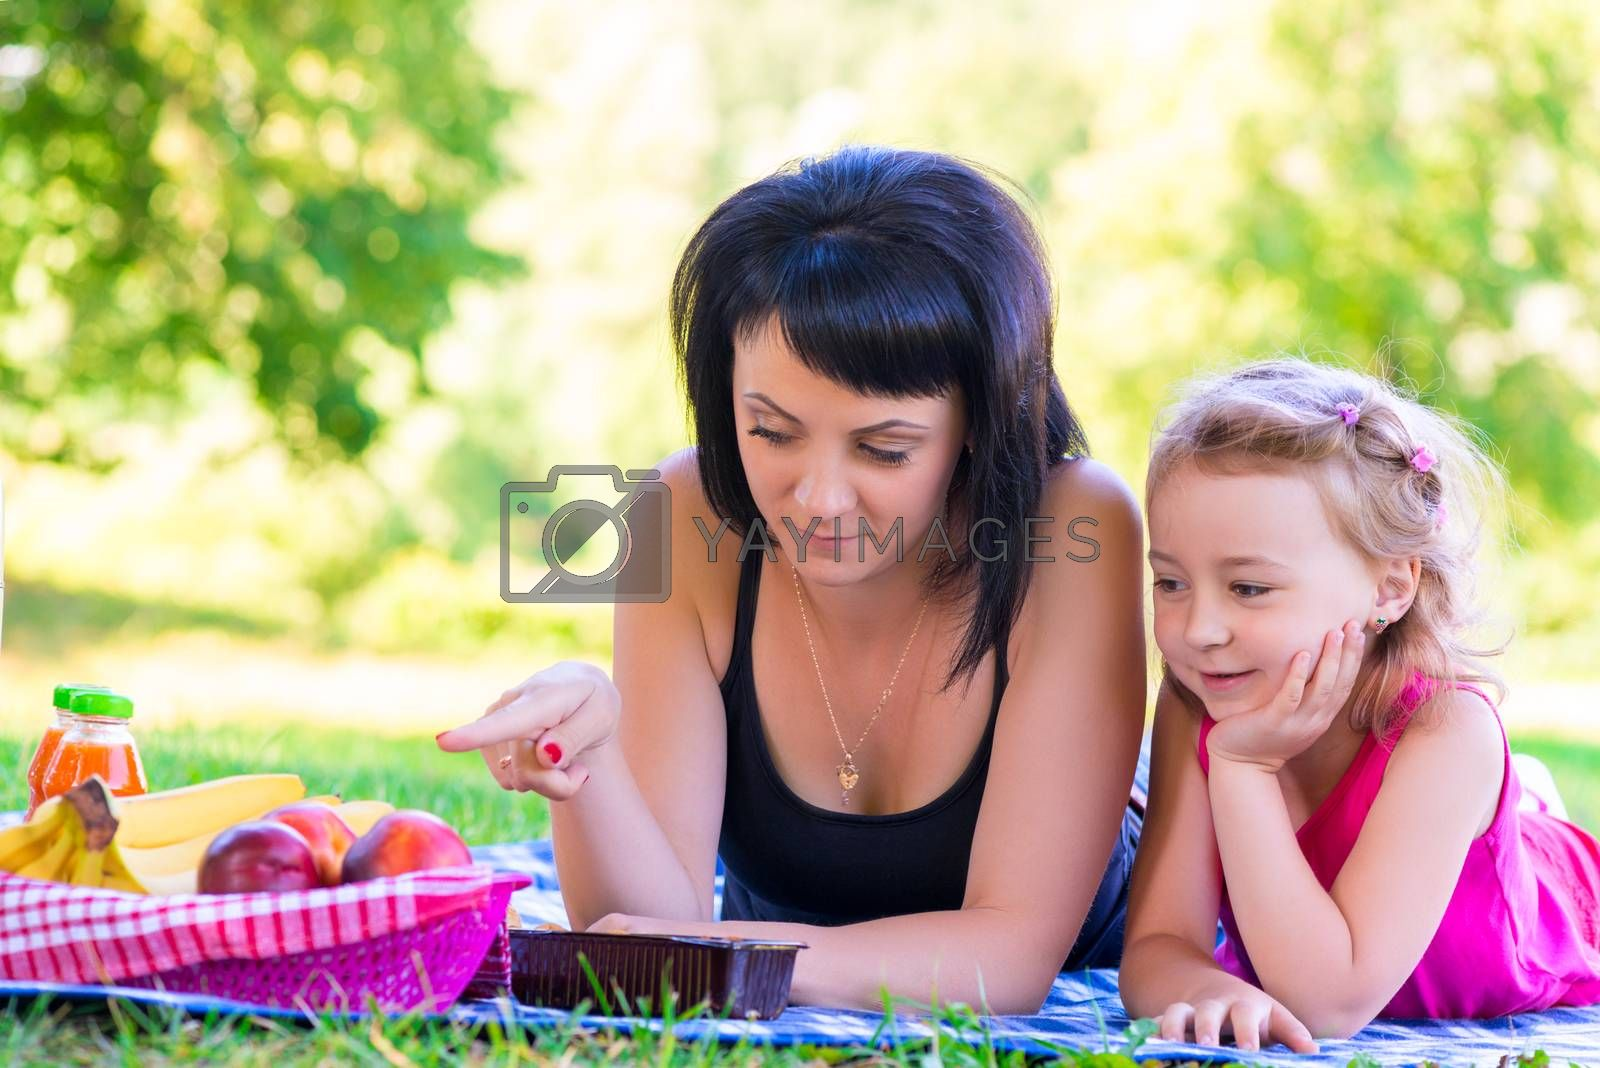 Mom showing her daughter at a picnic fruit